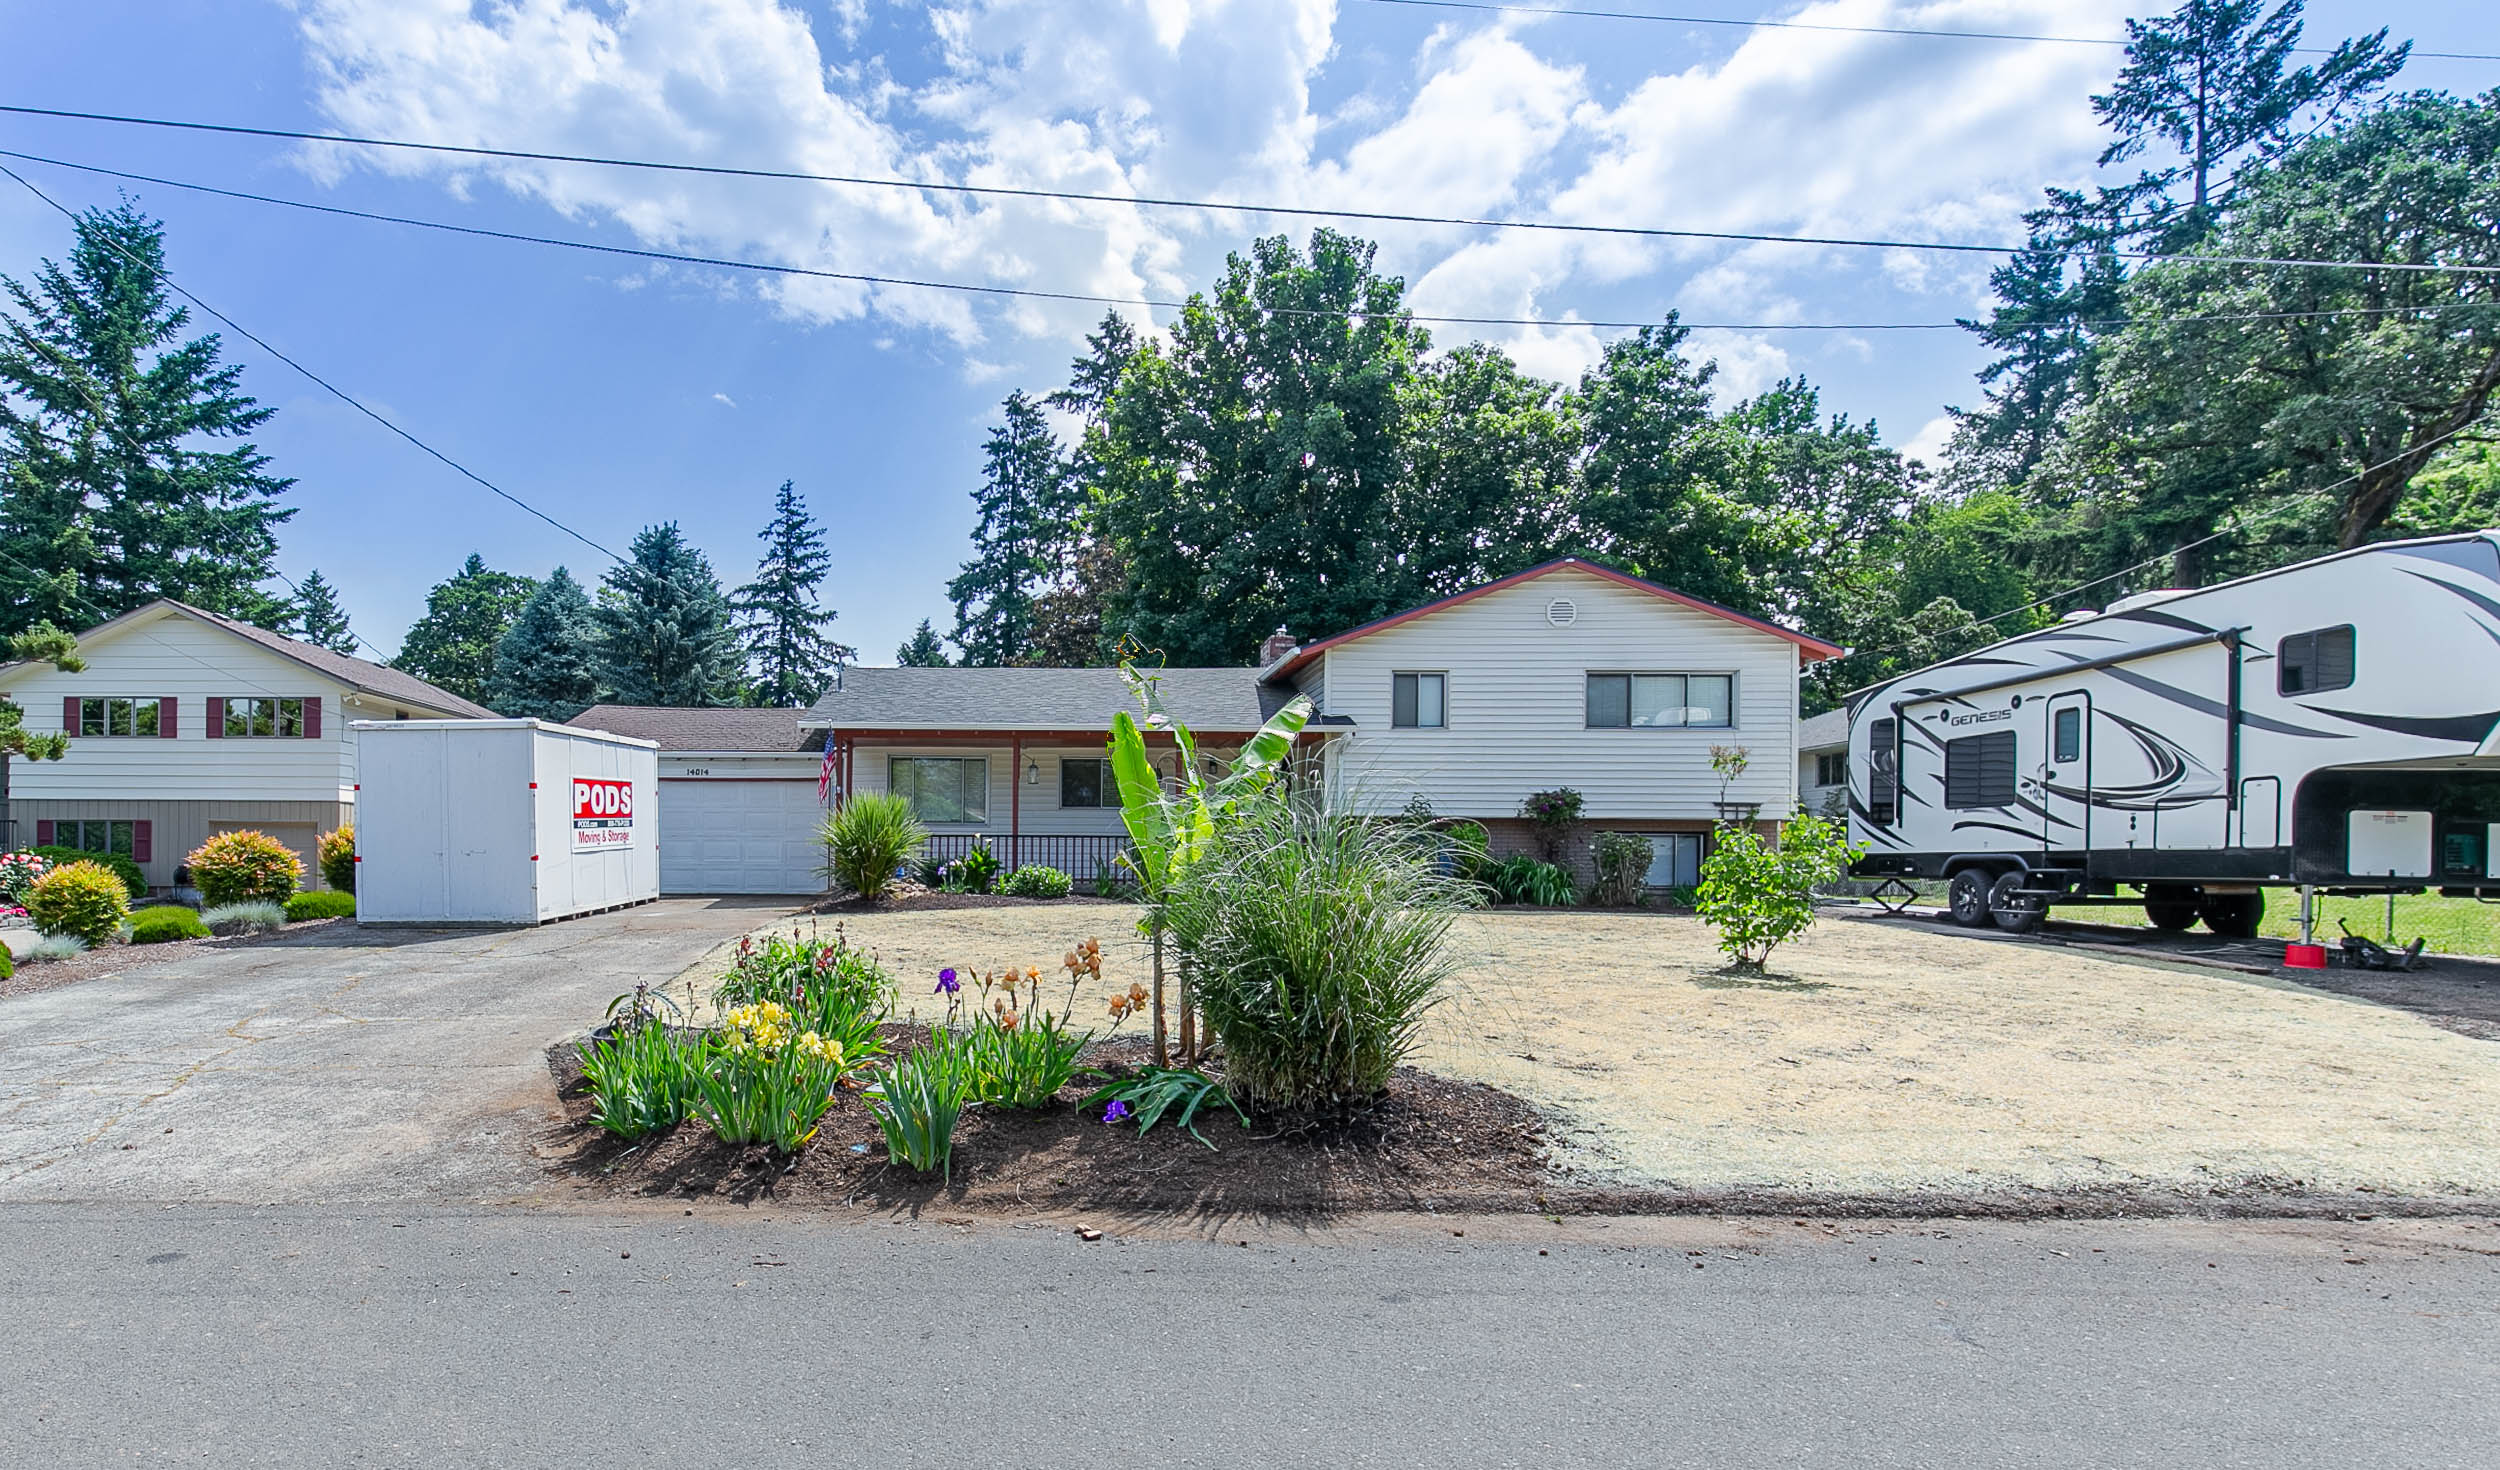 001_14014 SE Ash Ave Milwaukie_MG_7251-HDR.jpg